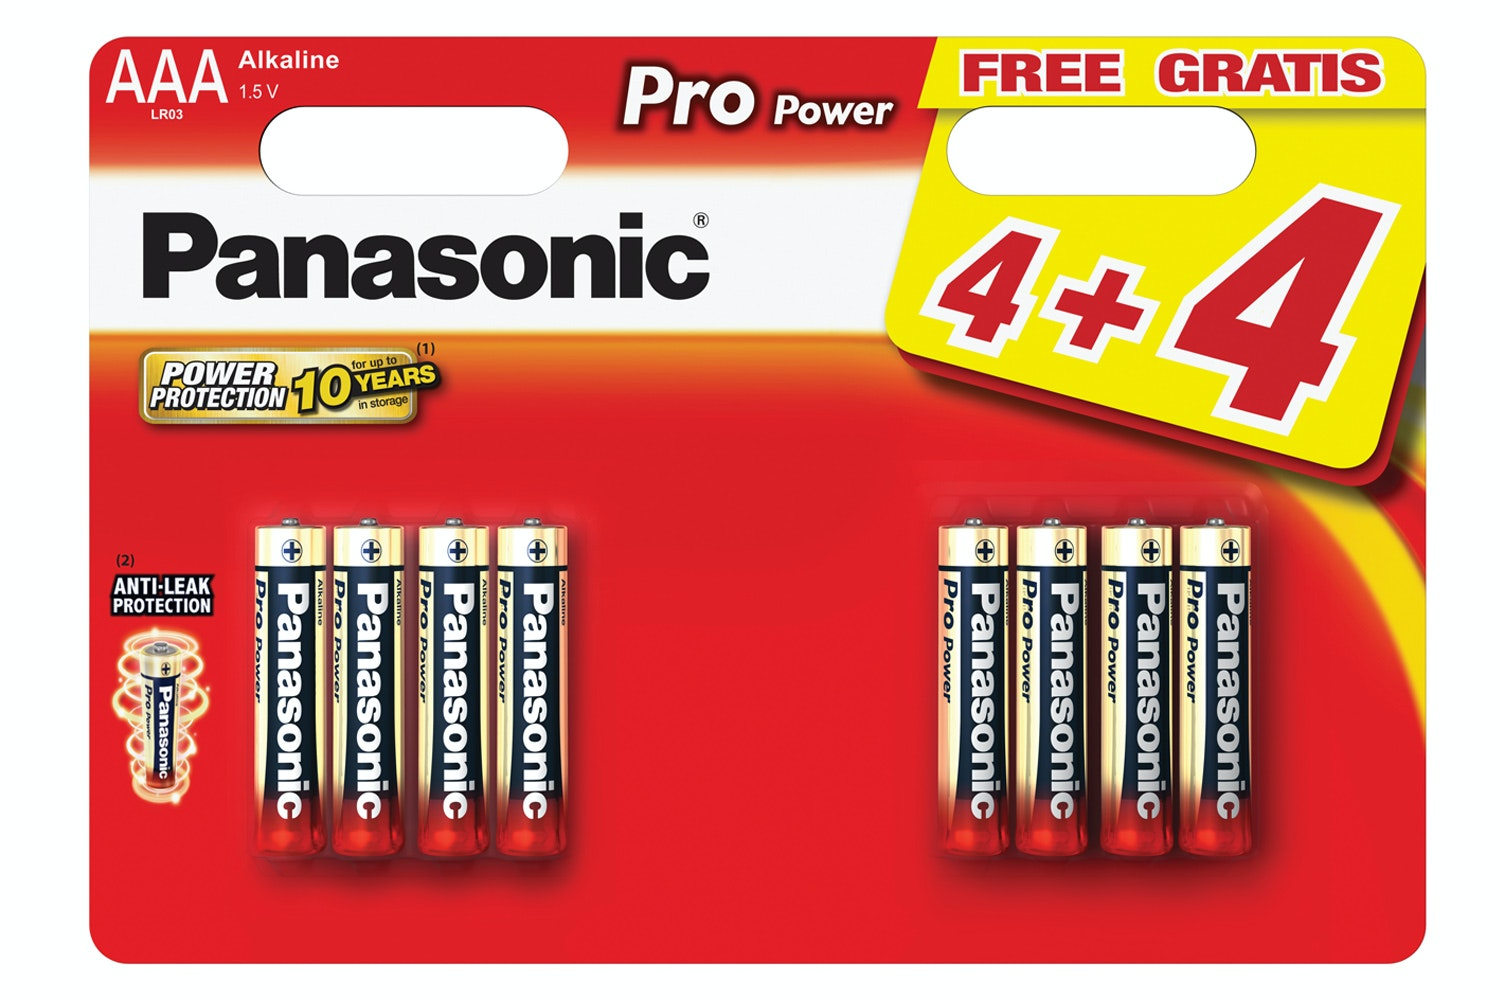 Panasonic PP Gold AAA Batteries | 4+4 Free